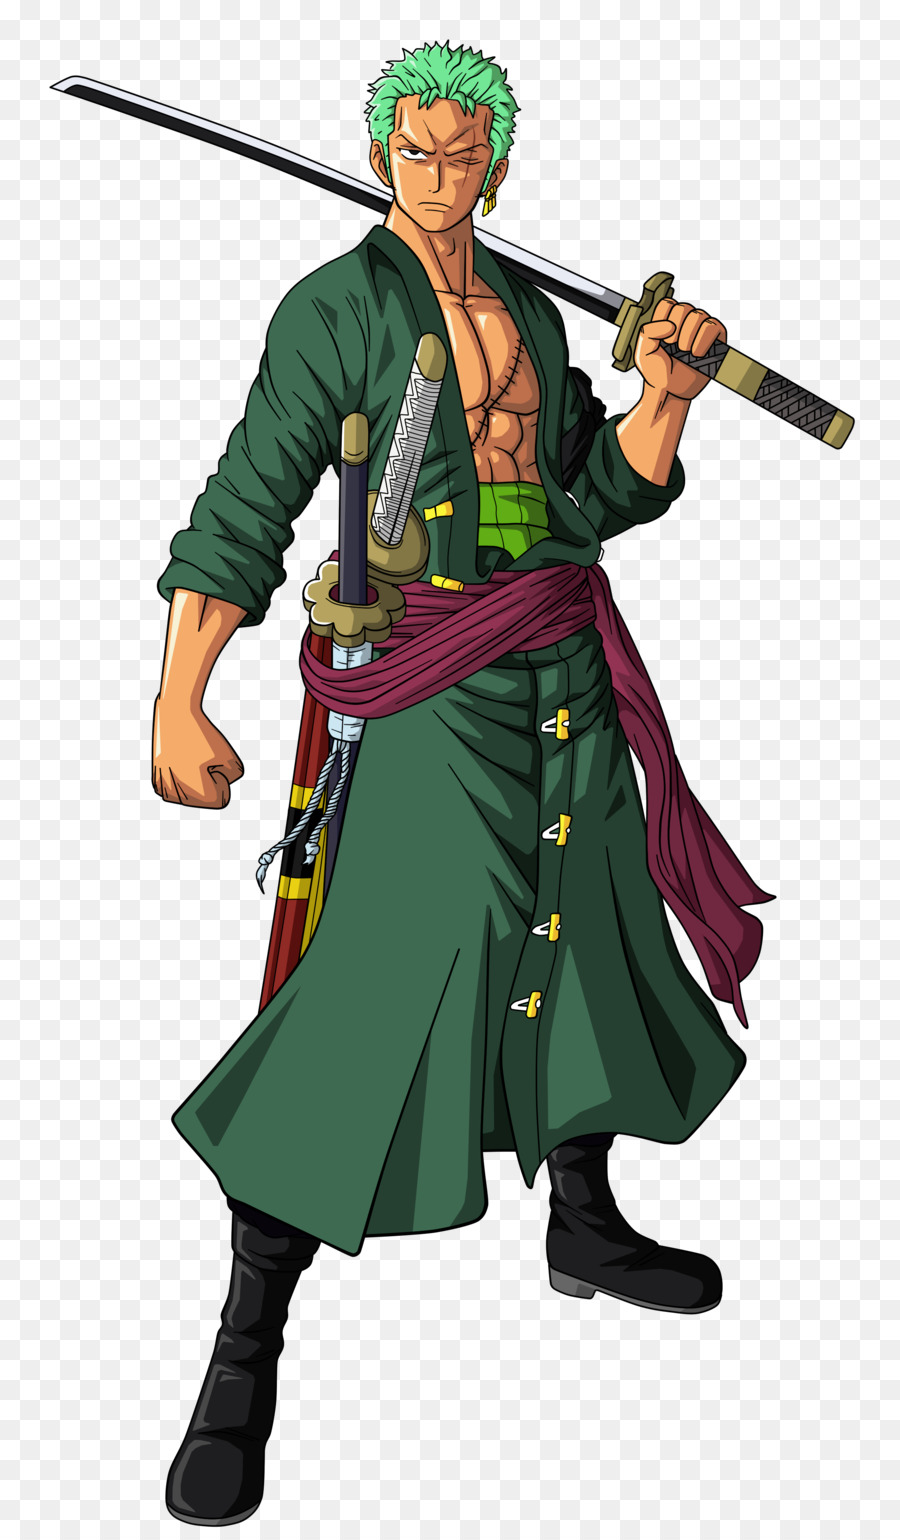 Zoro One Piecetransparent png image & clipart free download.